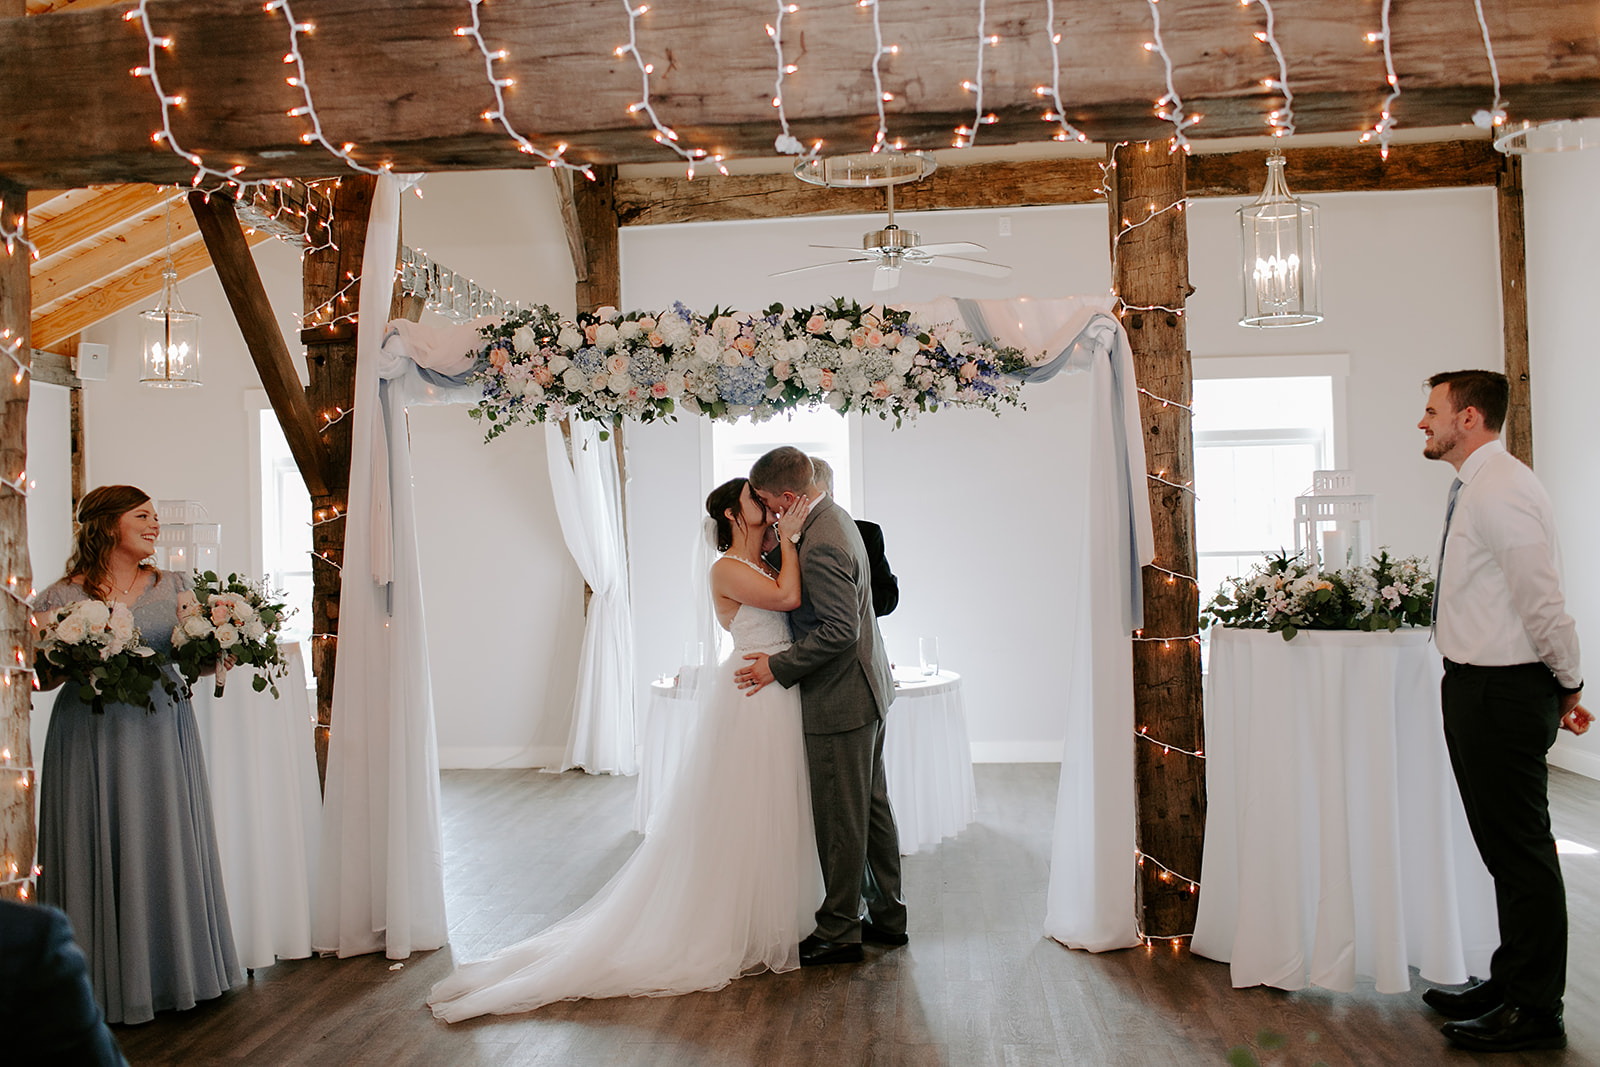 Kendra_and_Mattew_Indiana_Wedding_by_Emily_Wehner-605.jpg